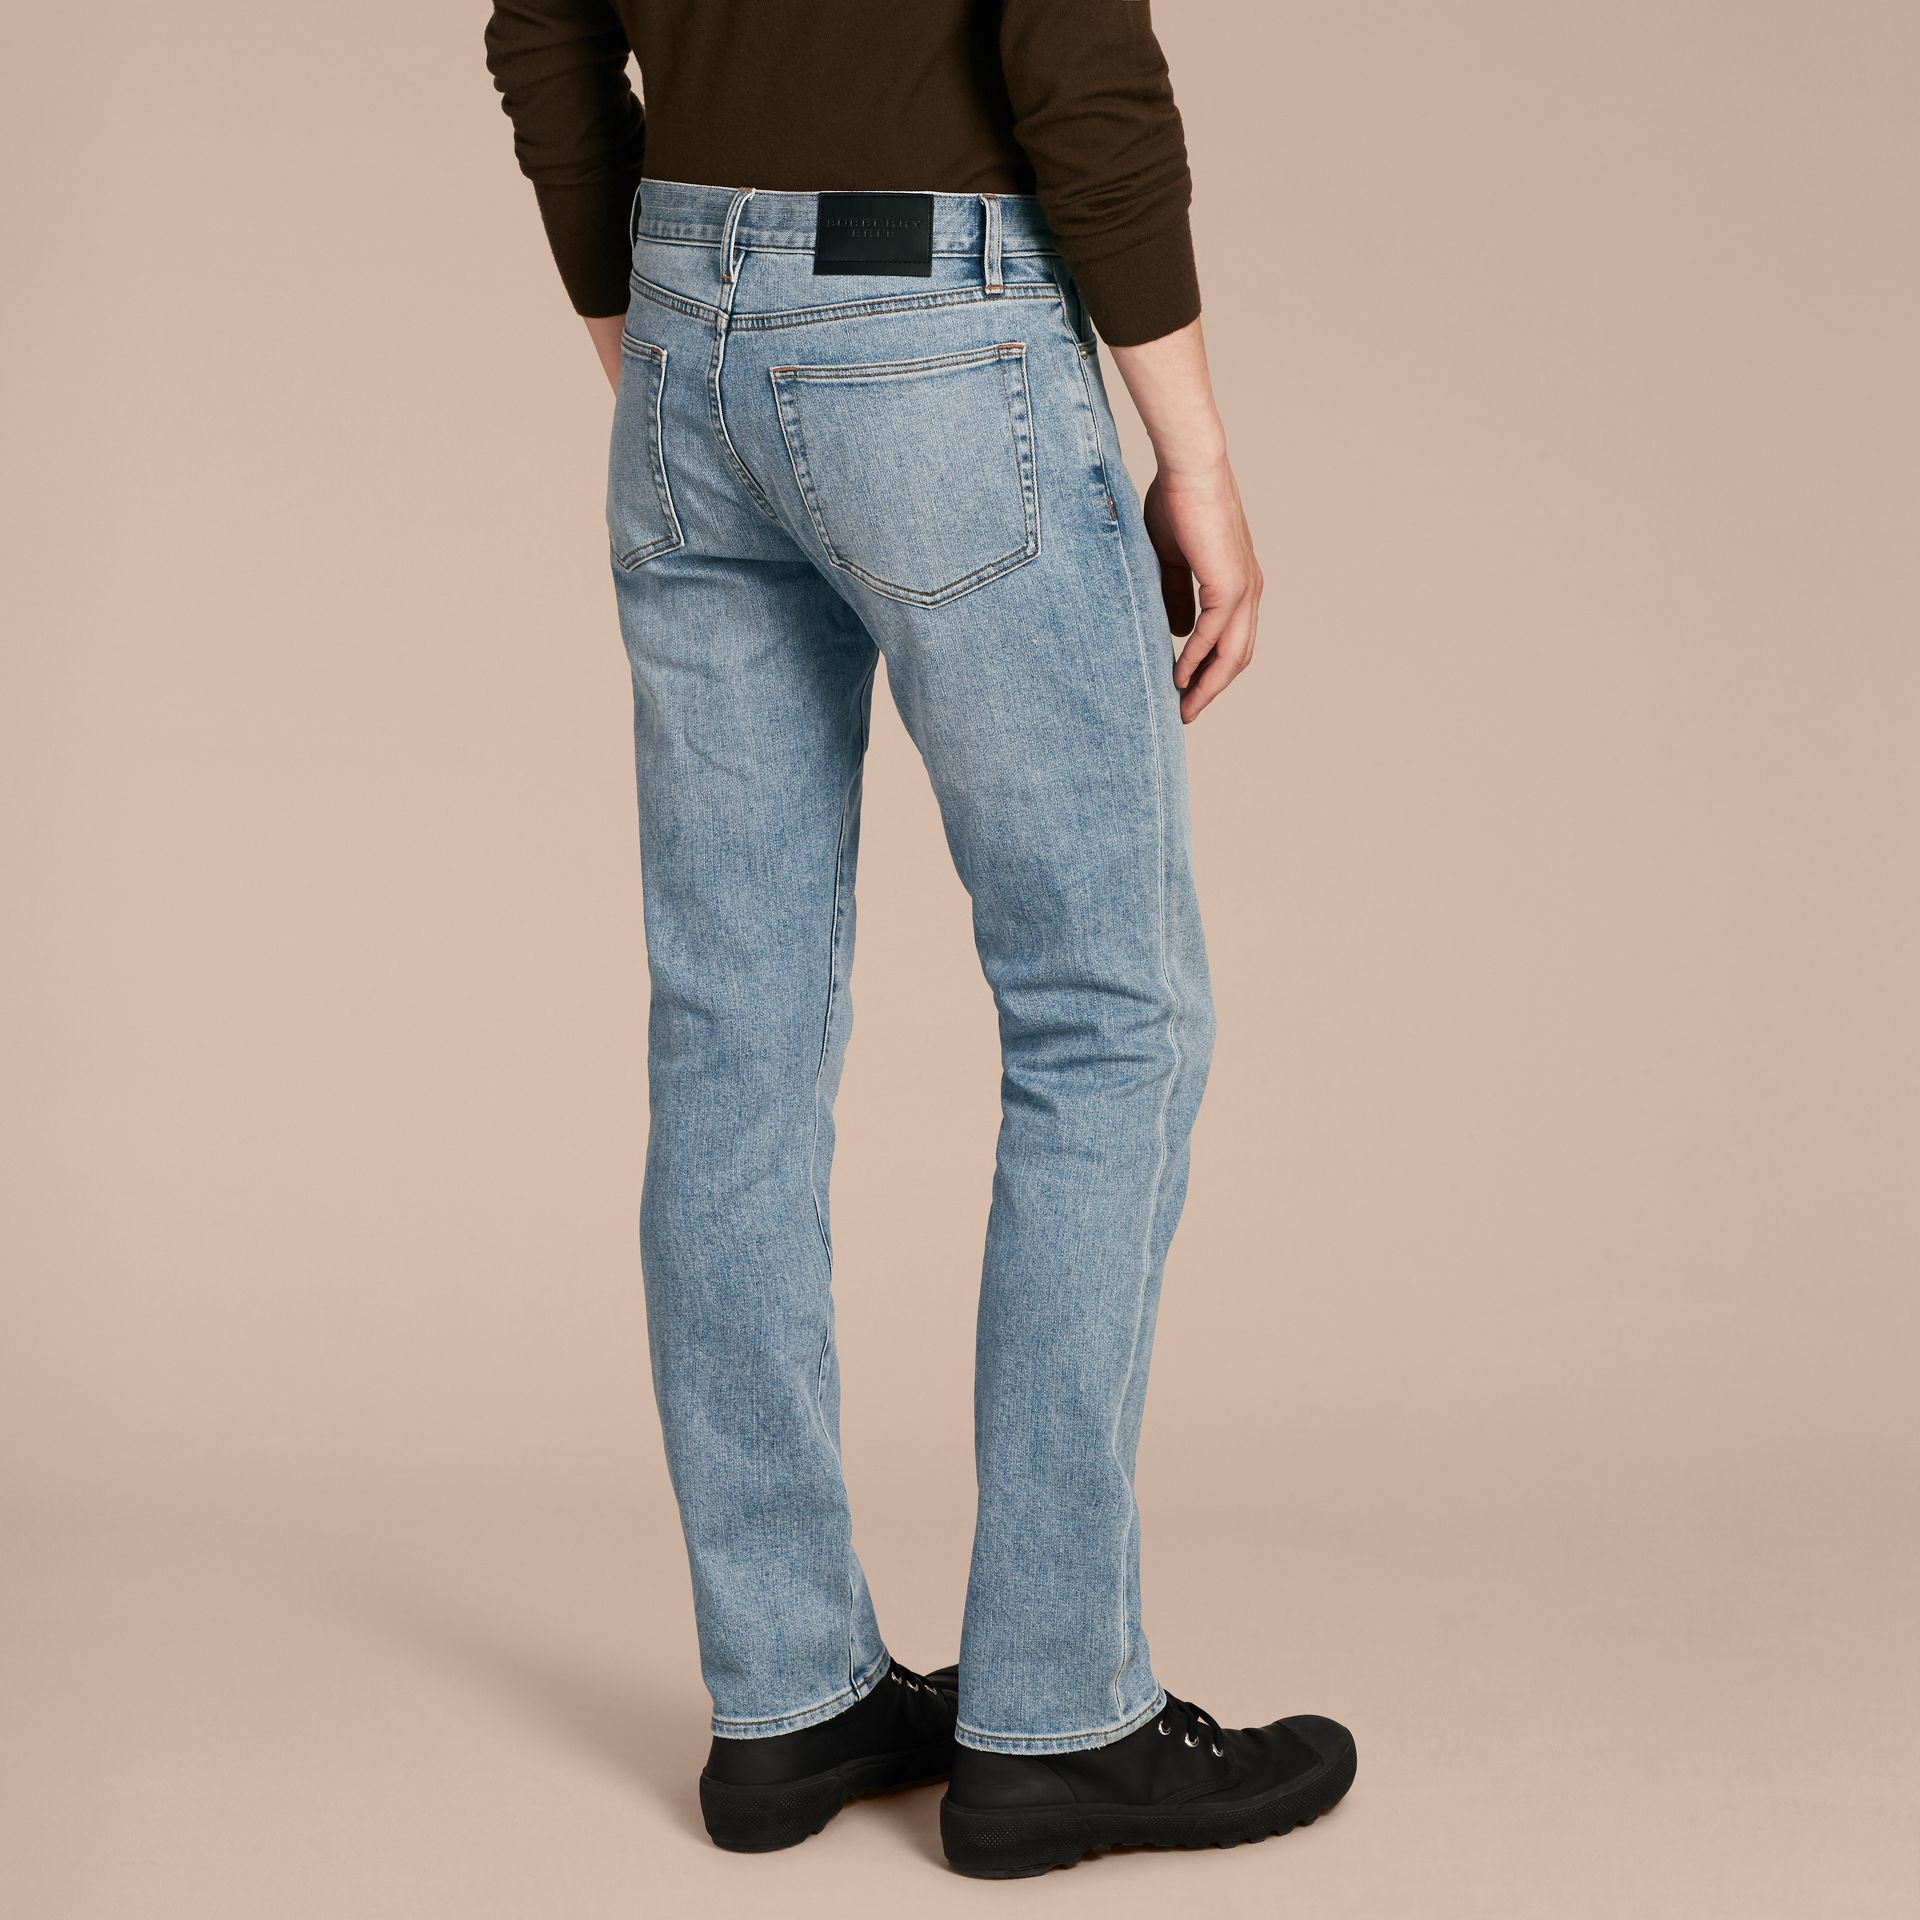 Indigo clair Jean stretch de coupe droite en denim japonais ultra-confortable - photo de la galerie 3